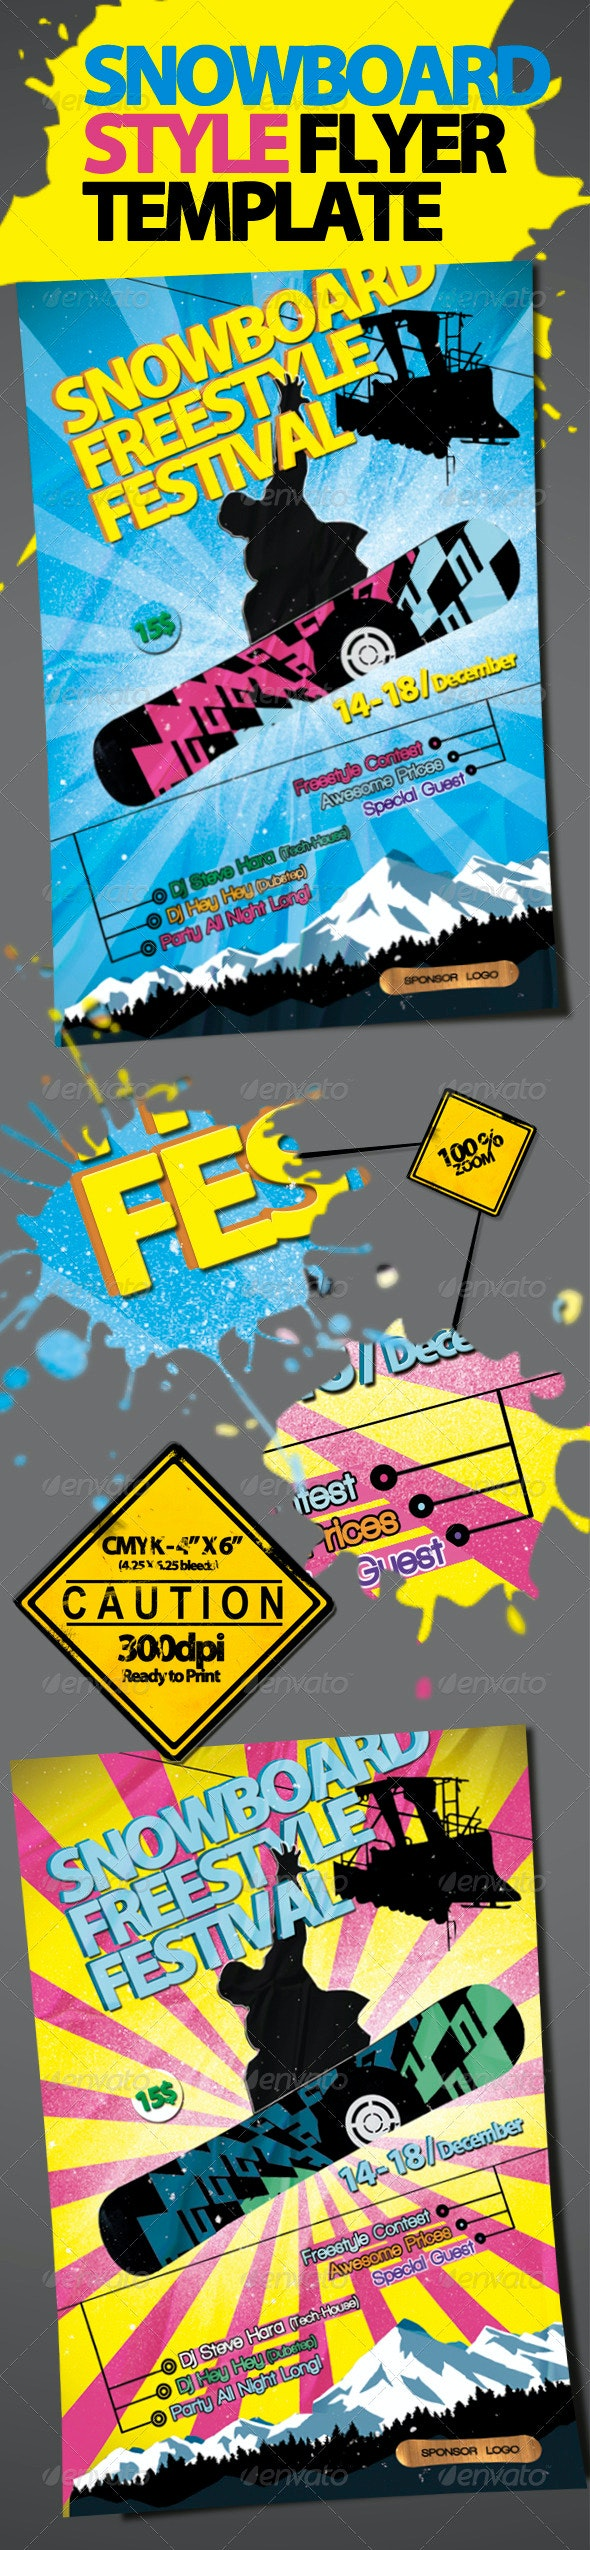 Snowboard Style Flyer Template - Sports Events